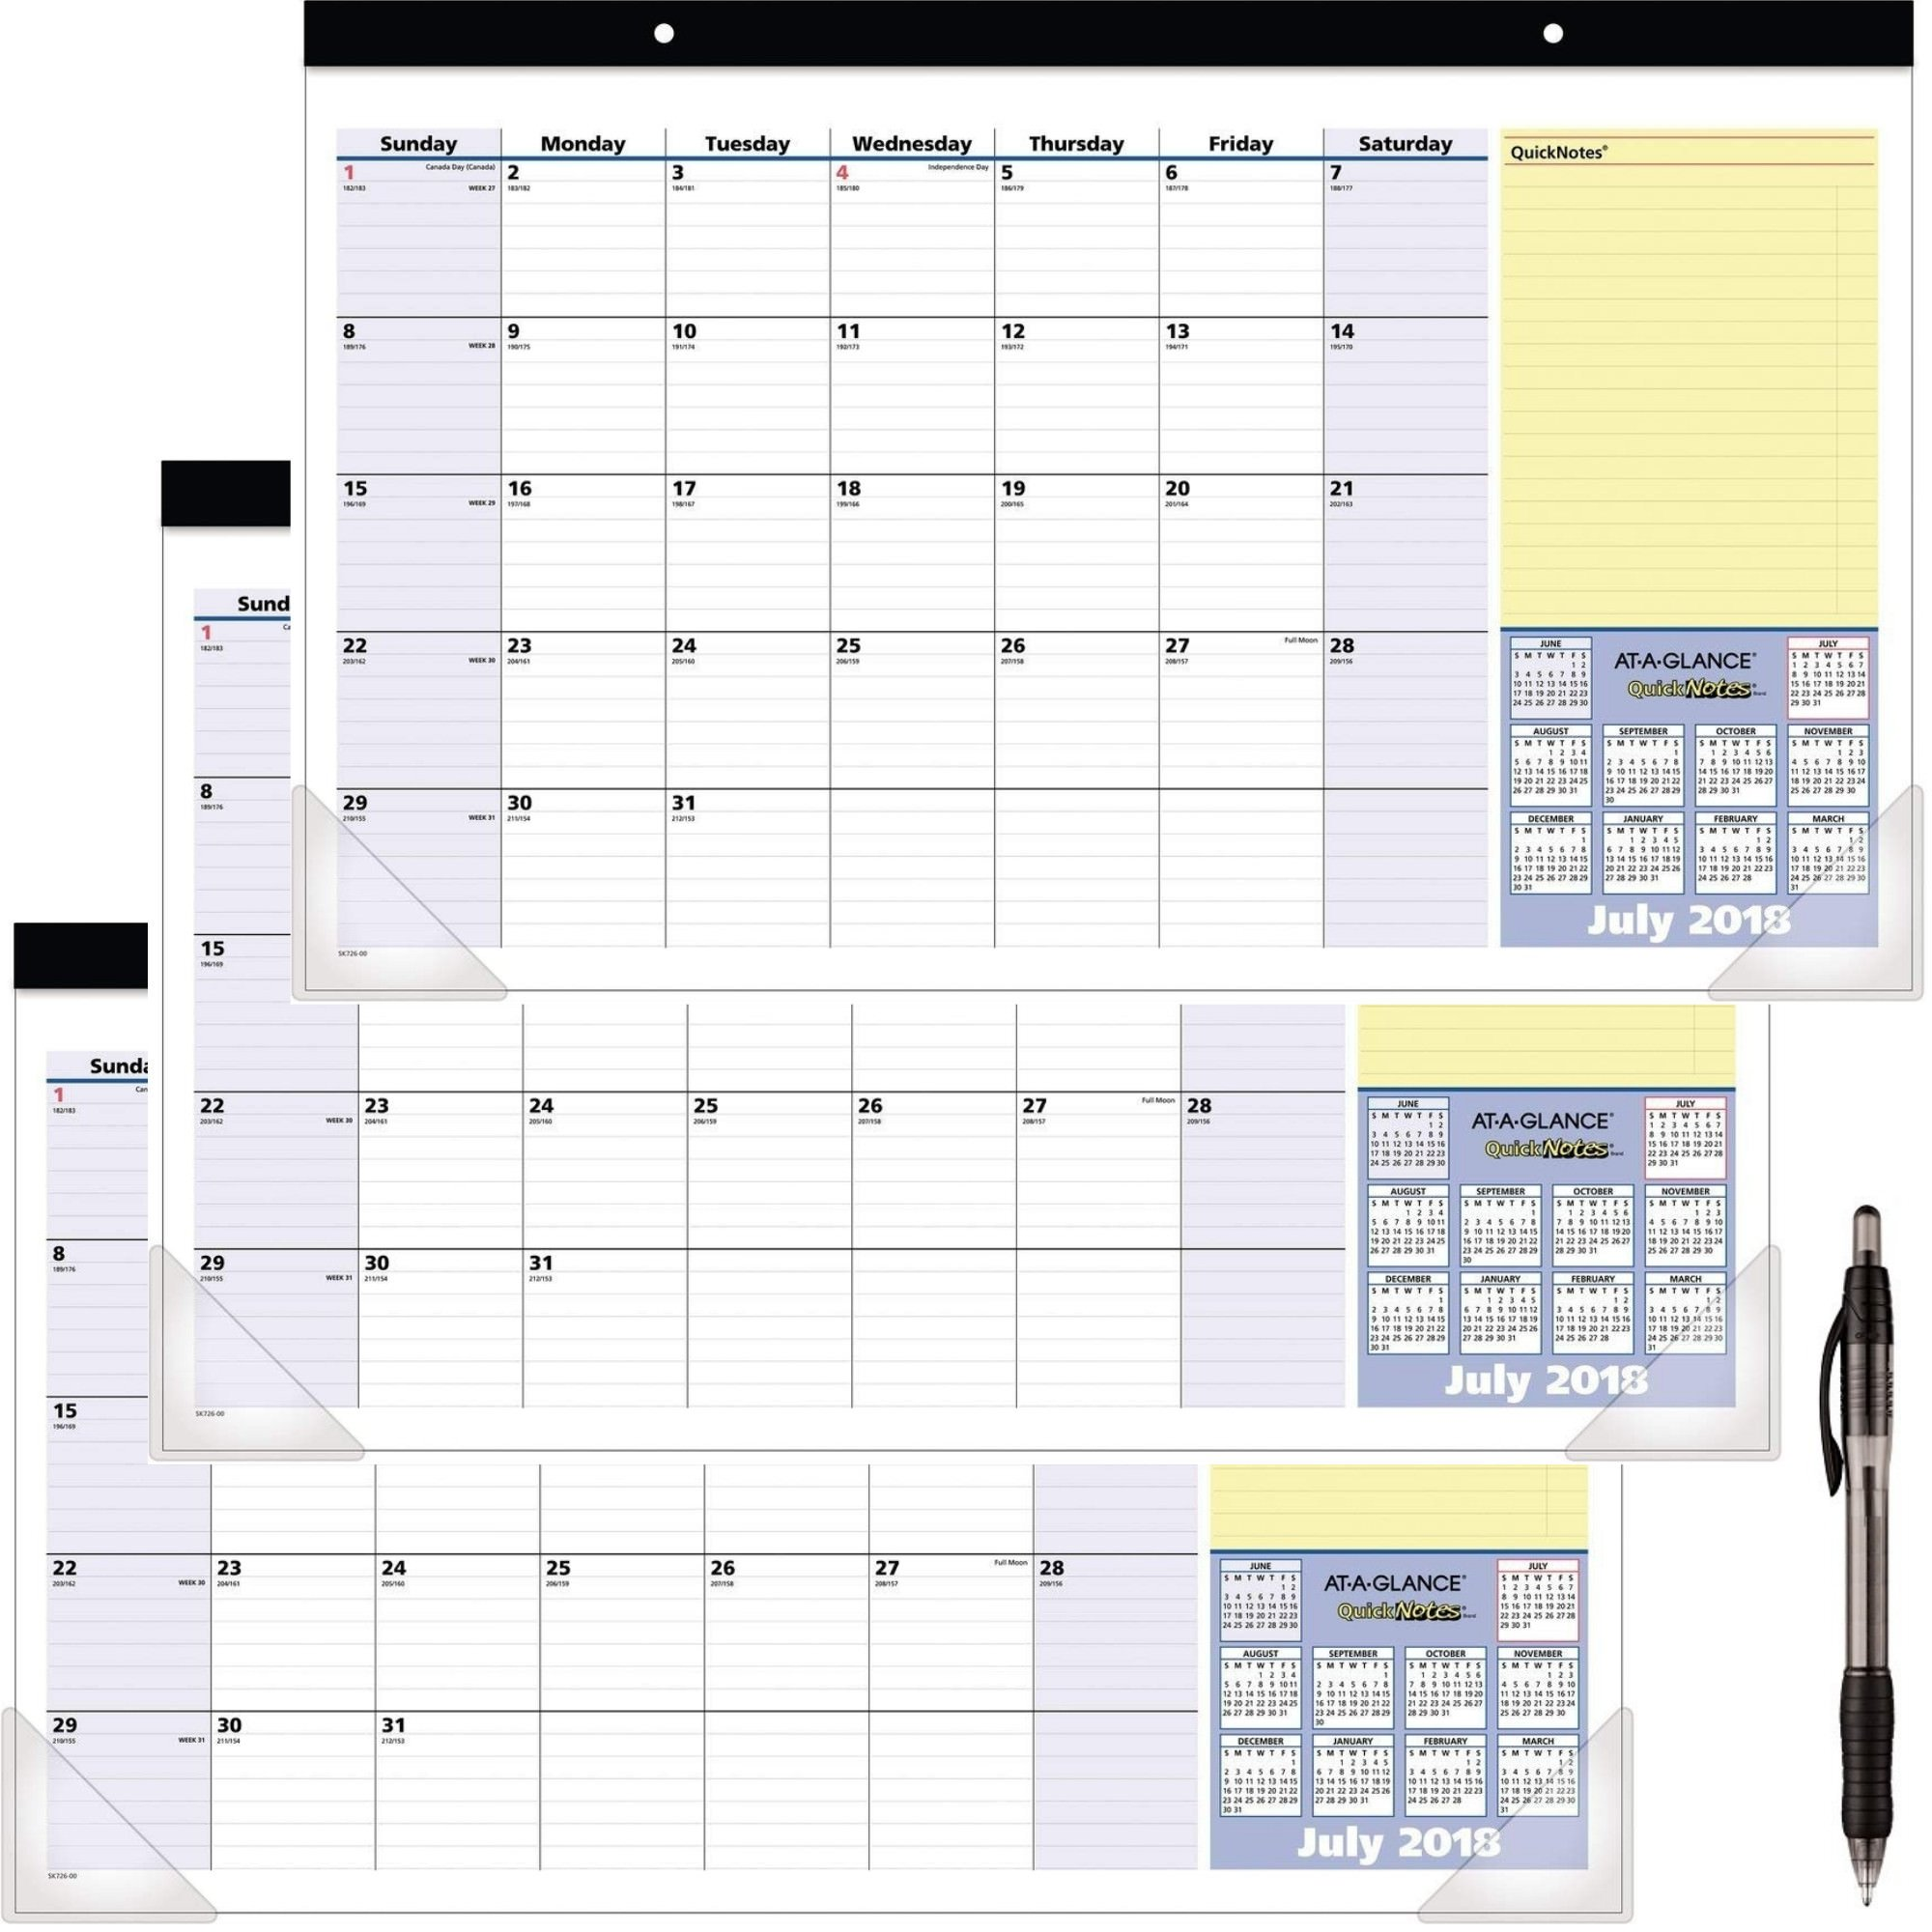 At-A-Glance 2018-2019 Academic Year Desk Pad Calendar, Compact, 17-3/4 x 10-7/8, QuickNotes (SK72600) 3 Pack - Bundle Includes Black Ballpoint Pen